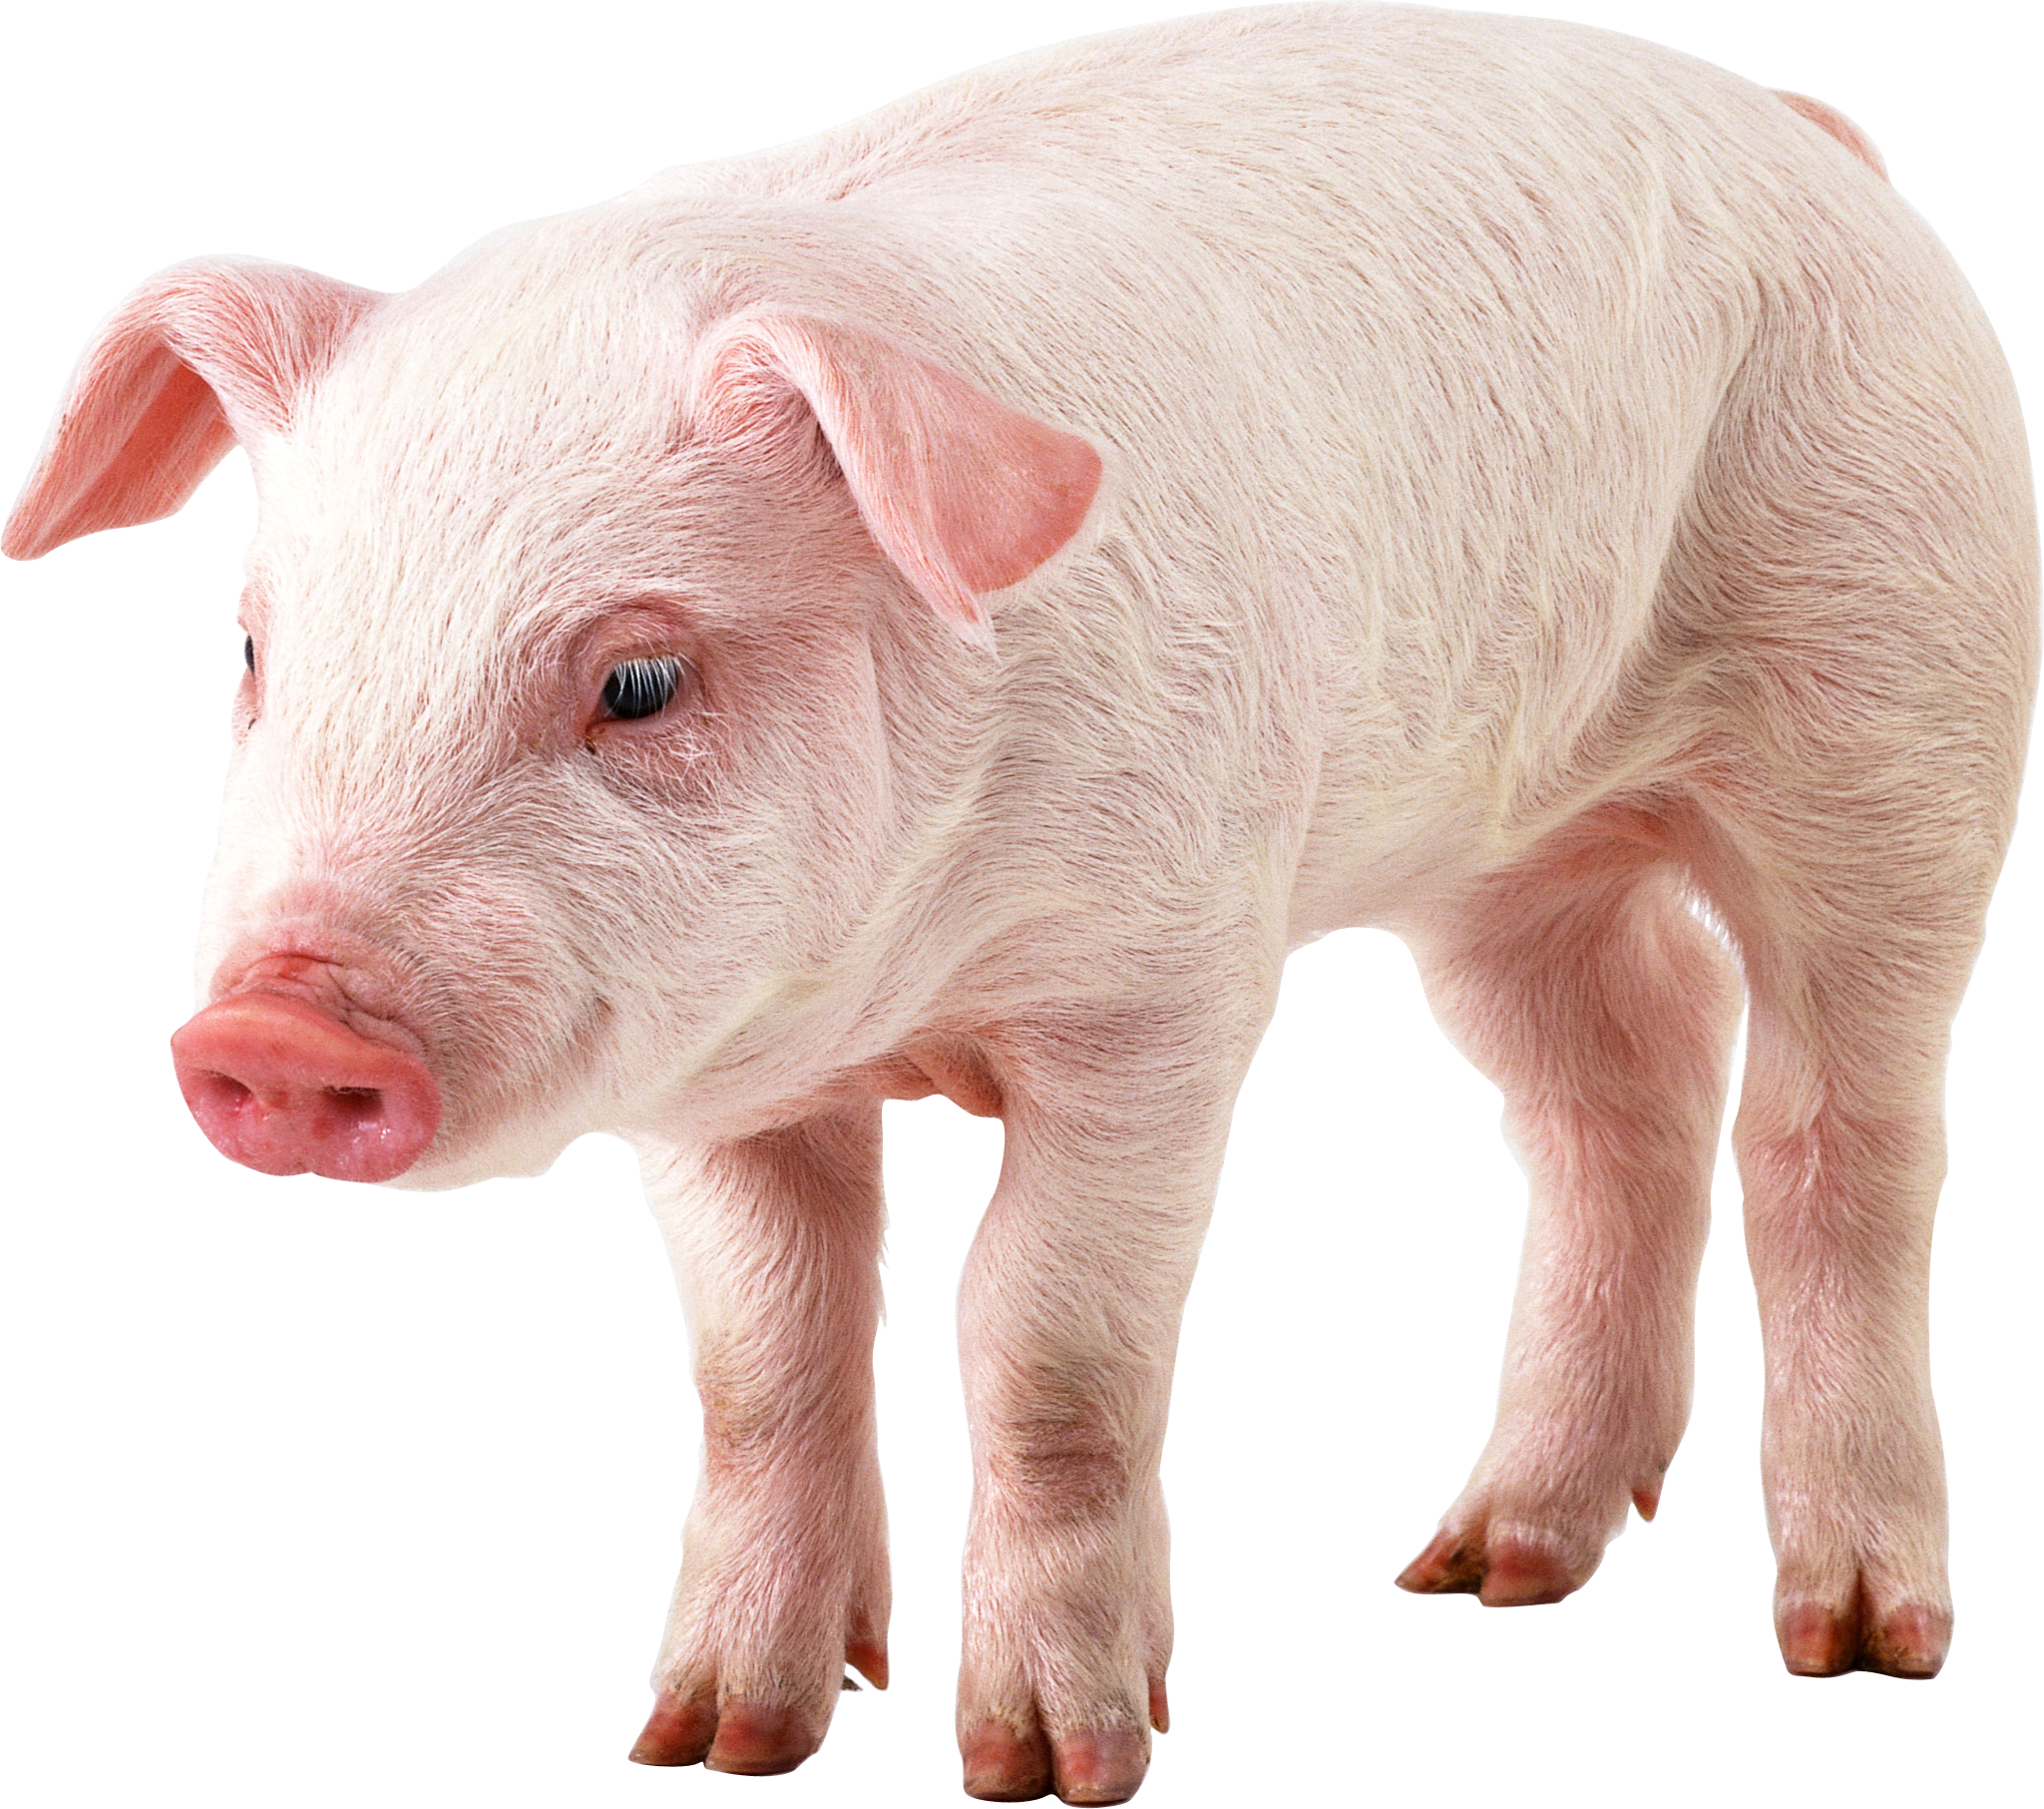 Baby Pig PNG HD - 129632